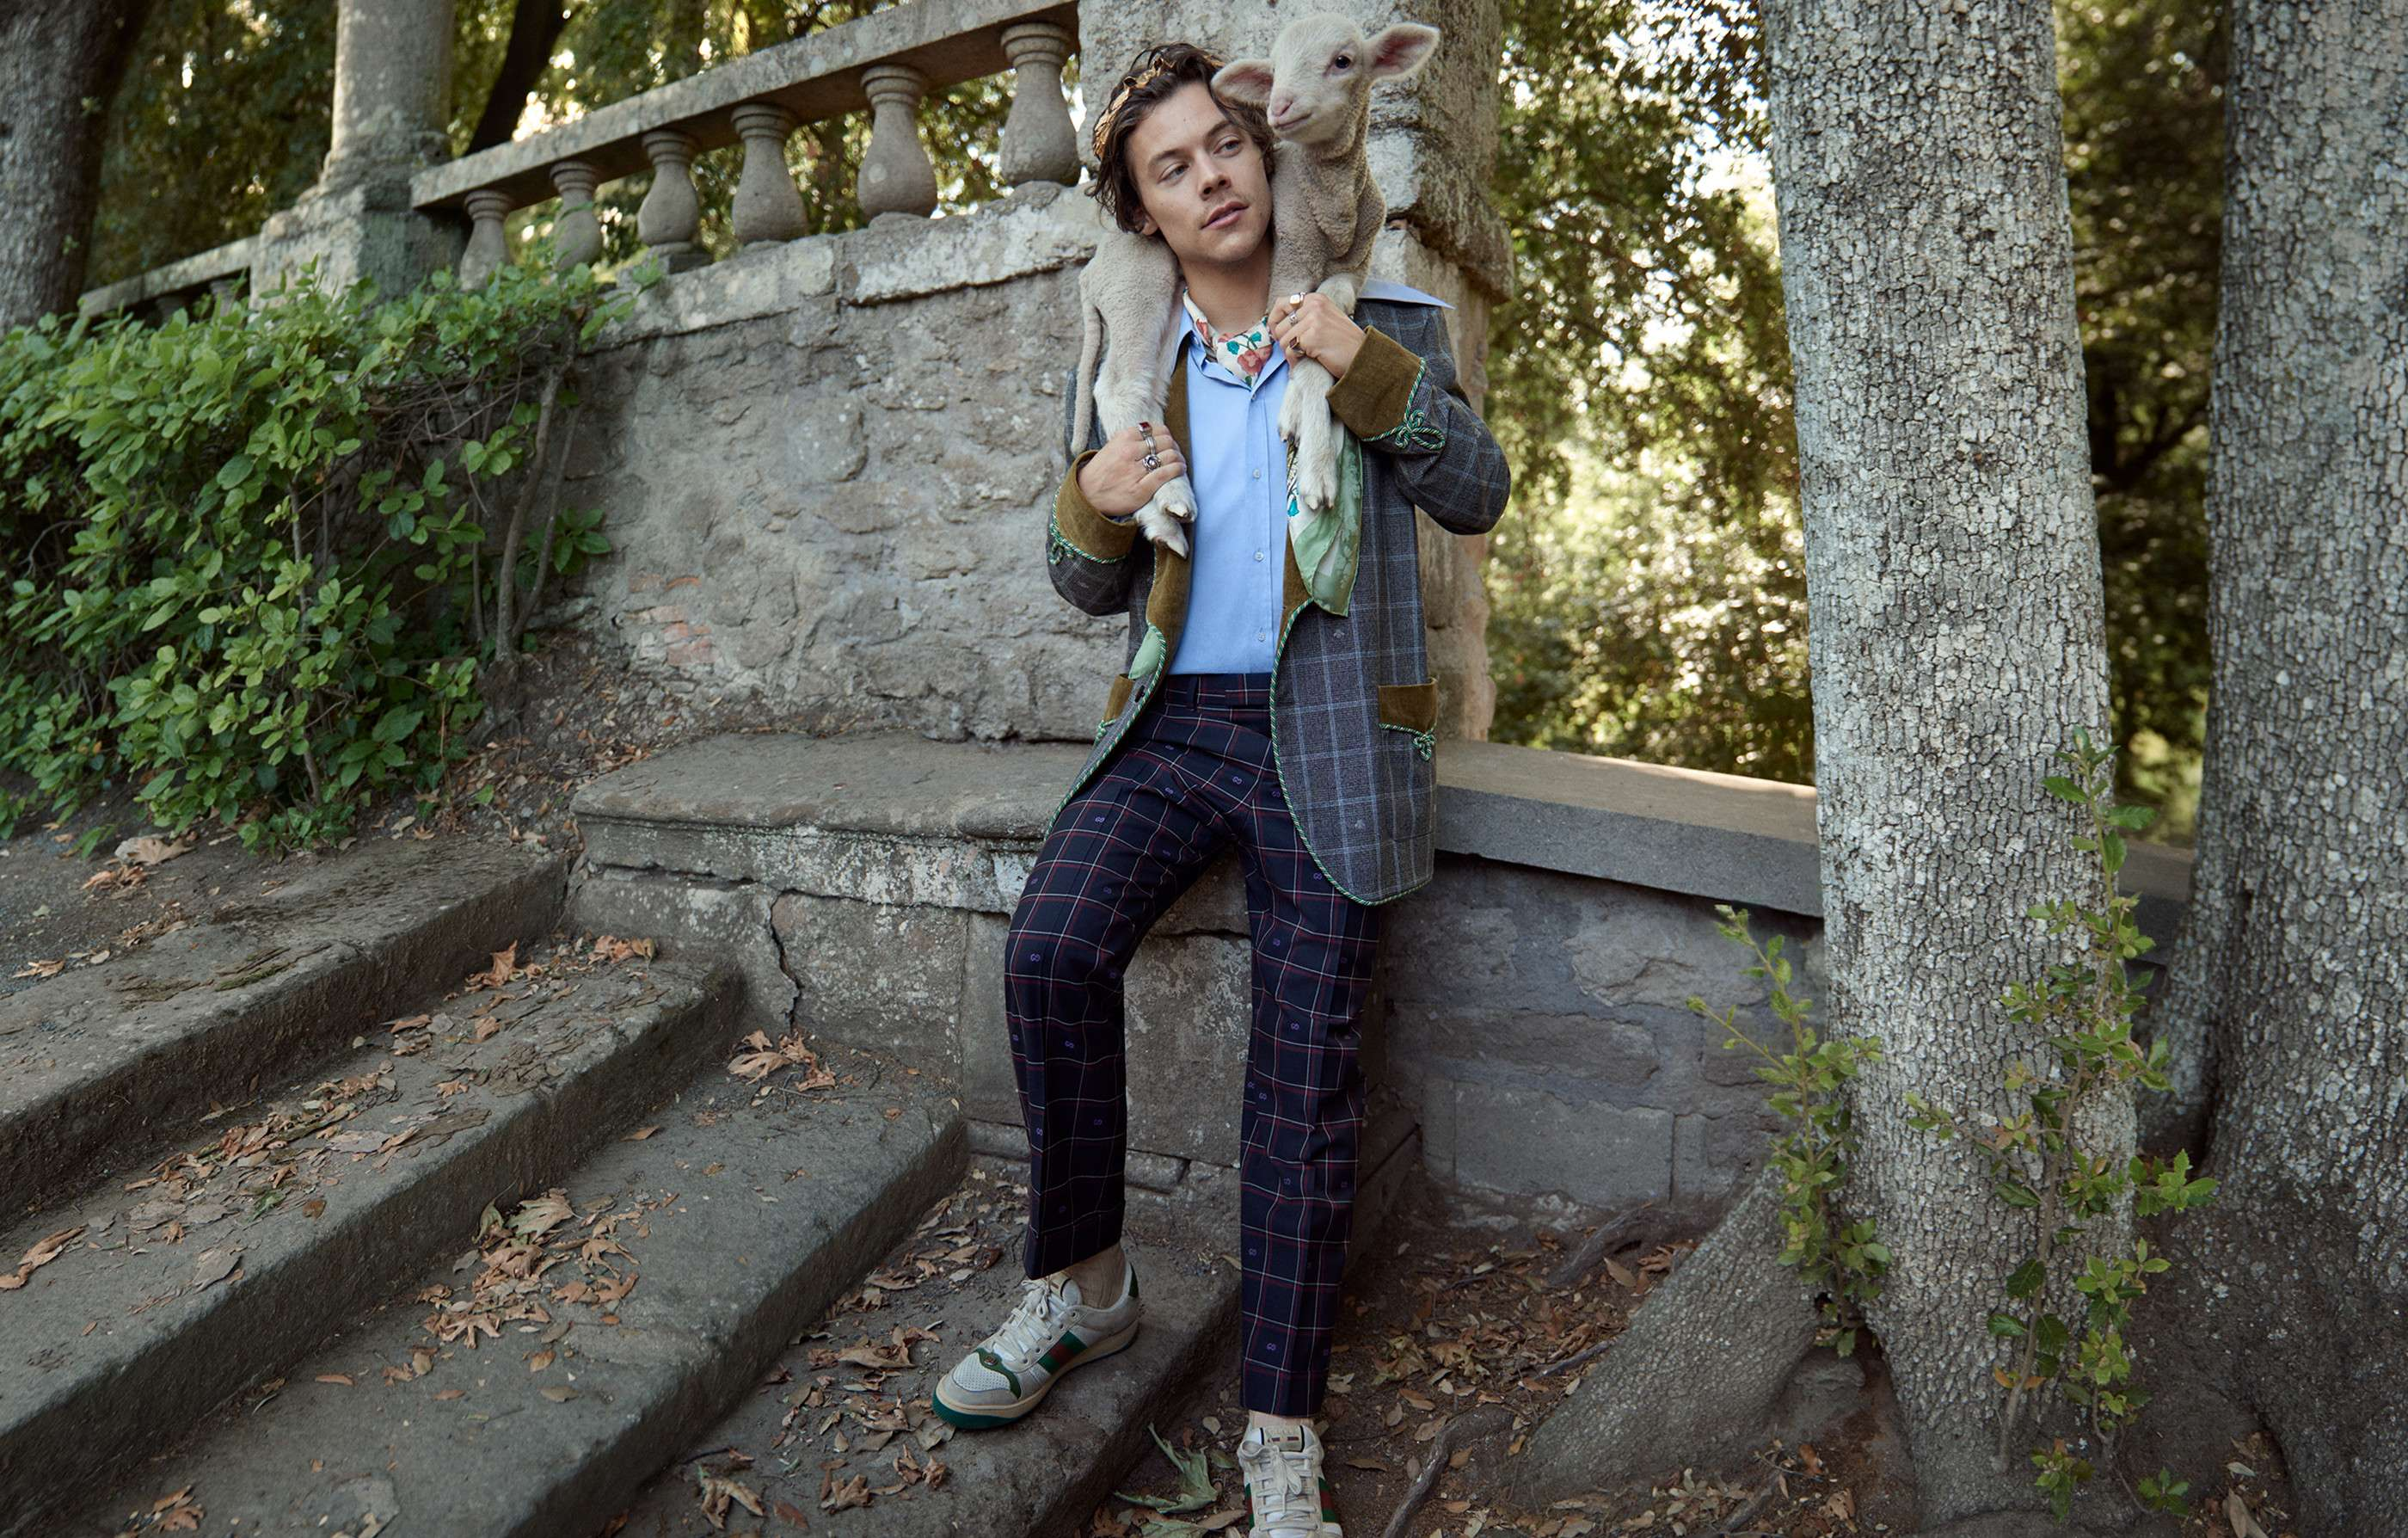 Harry Styles Fall Wallpaper Harry Styles For Gucci Cruise 2019 Men S Tailoring